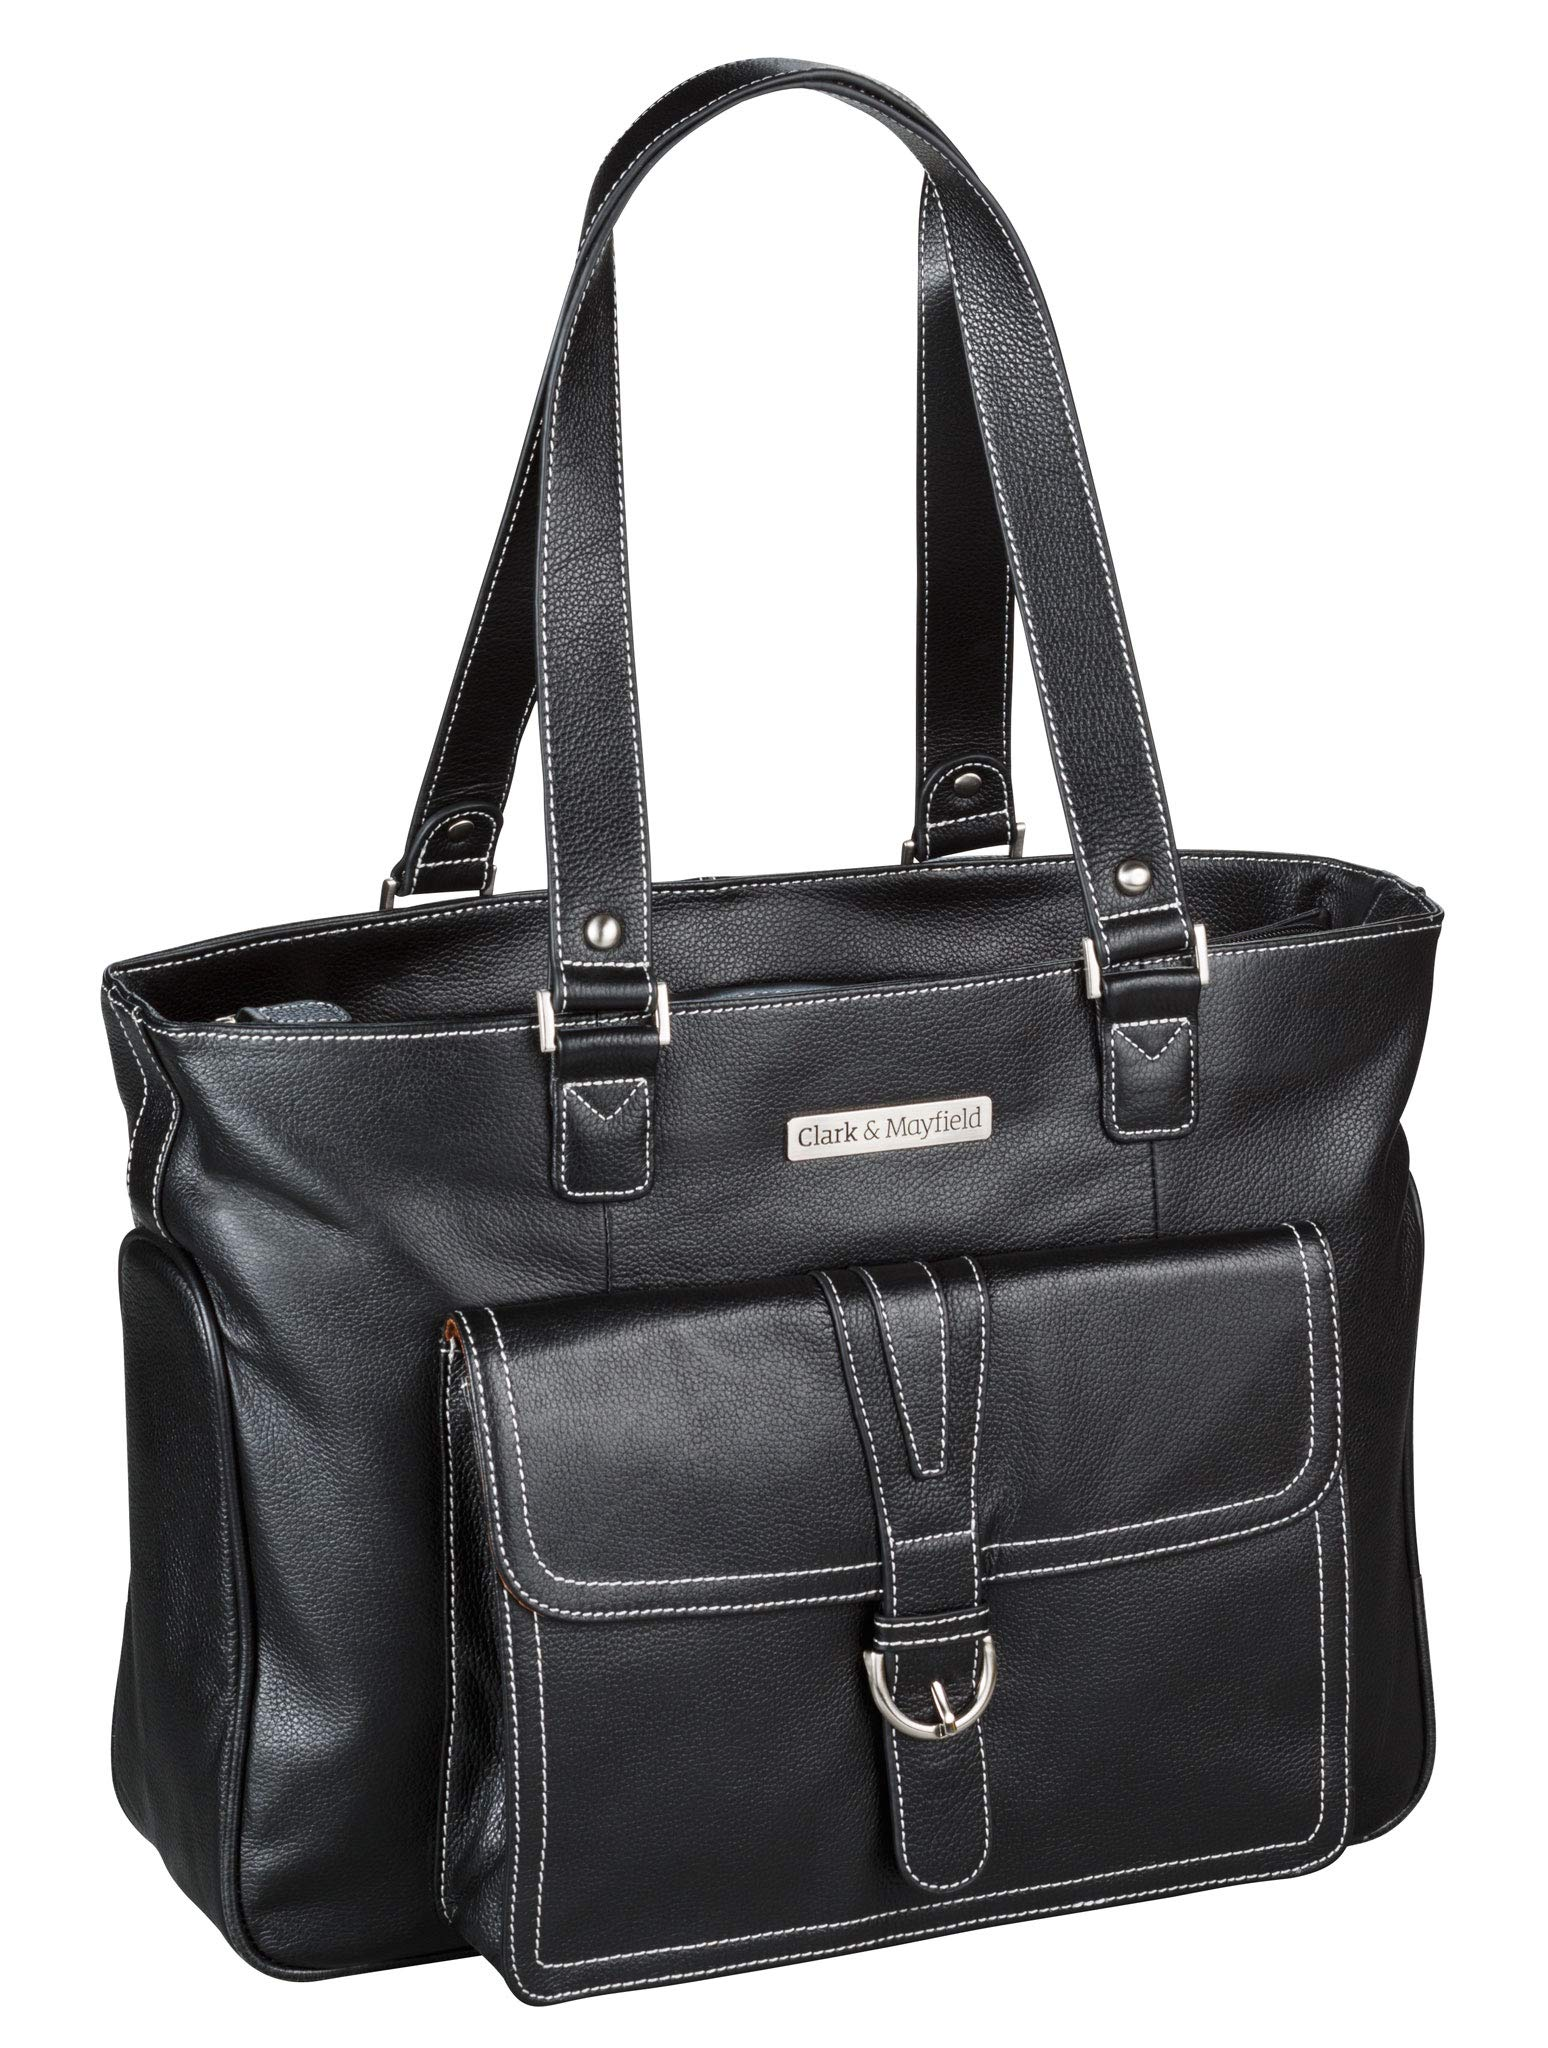 Clark & Mayfield Women's Stafford Pro Leather Laptop Tote Bag 15.6'' - Black